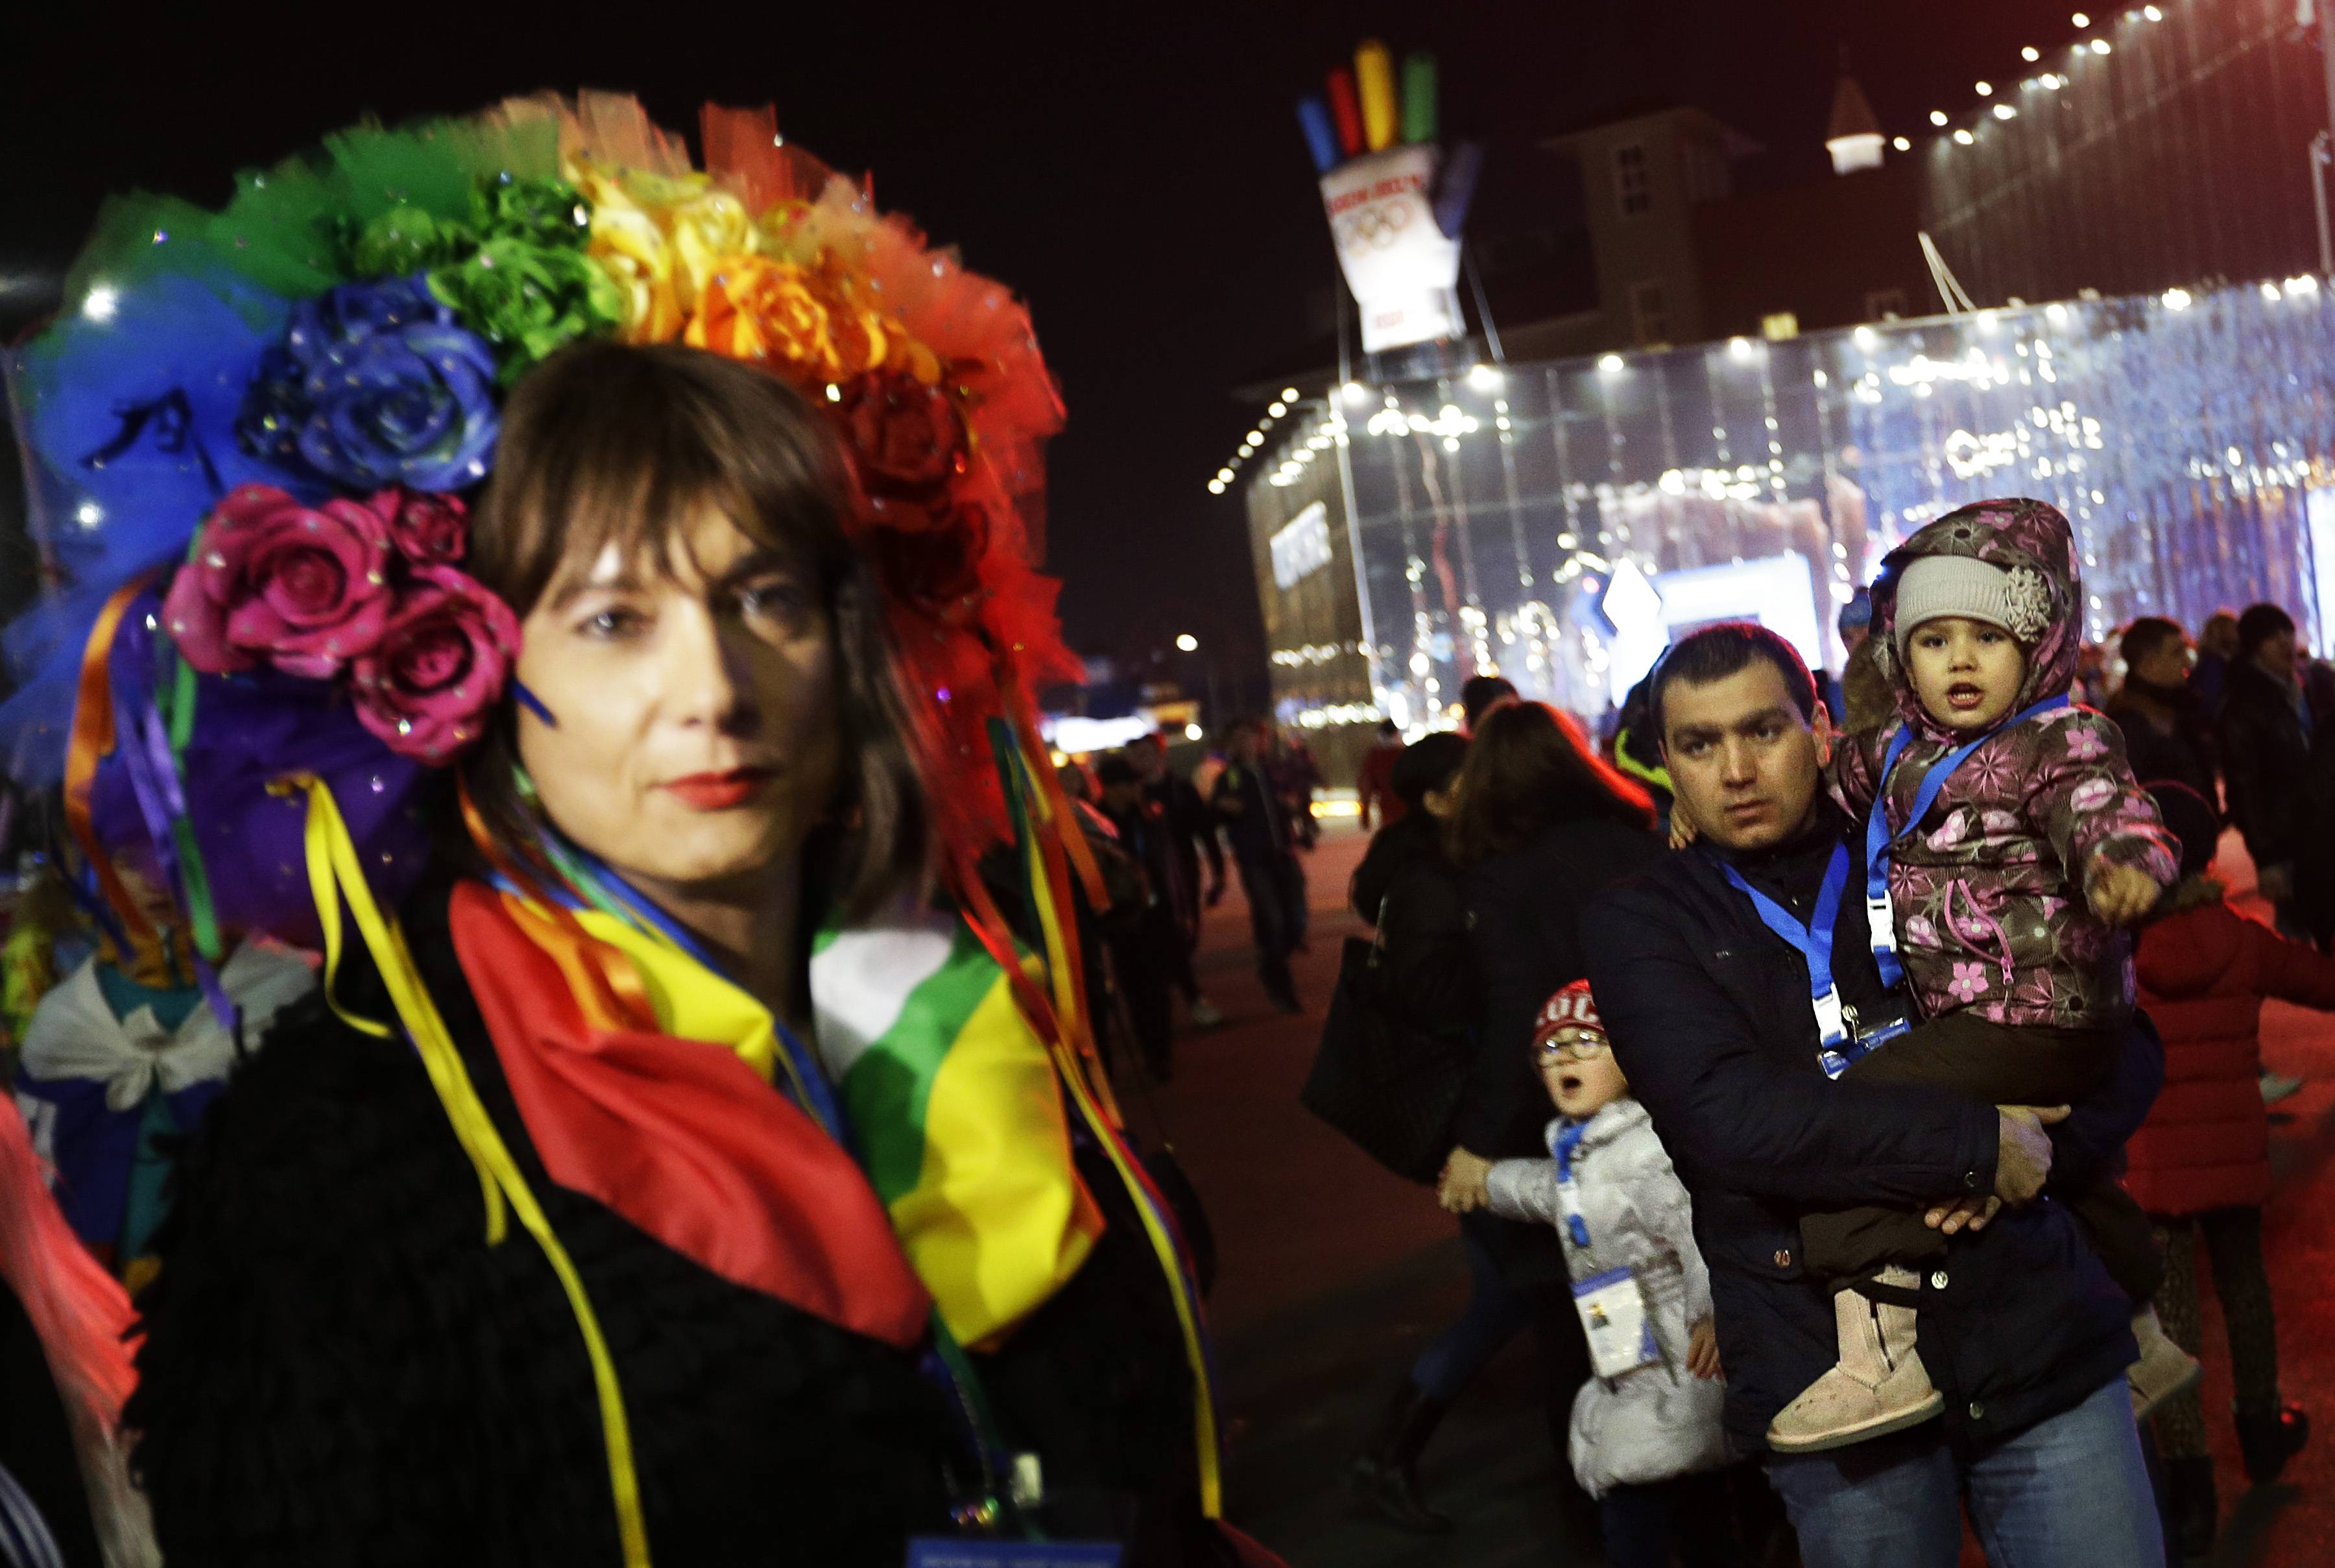 A father and children look on as Vladimir Luxuria, left, a former Communist lawmaker in the Italian parliament and prominent crusader for transgender rights, speaks out about gay rights while walking through the Olympic Plaza at the 2014 Winter Olympics, Monday, Feb. 17, 2014, in Sochi, Russia. Luxuria was soon after detained by police upon entering the Shayba Arena to attend a women's ice hockey match.